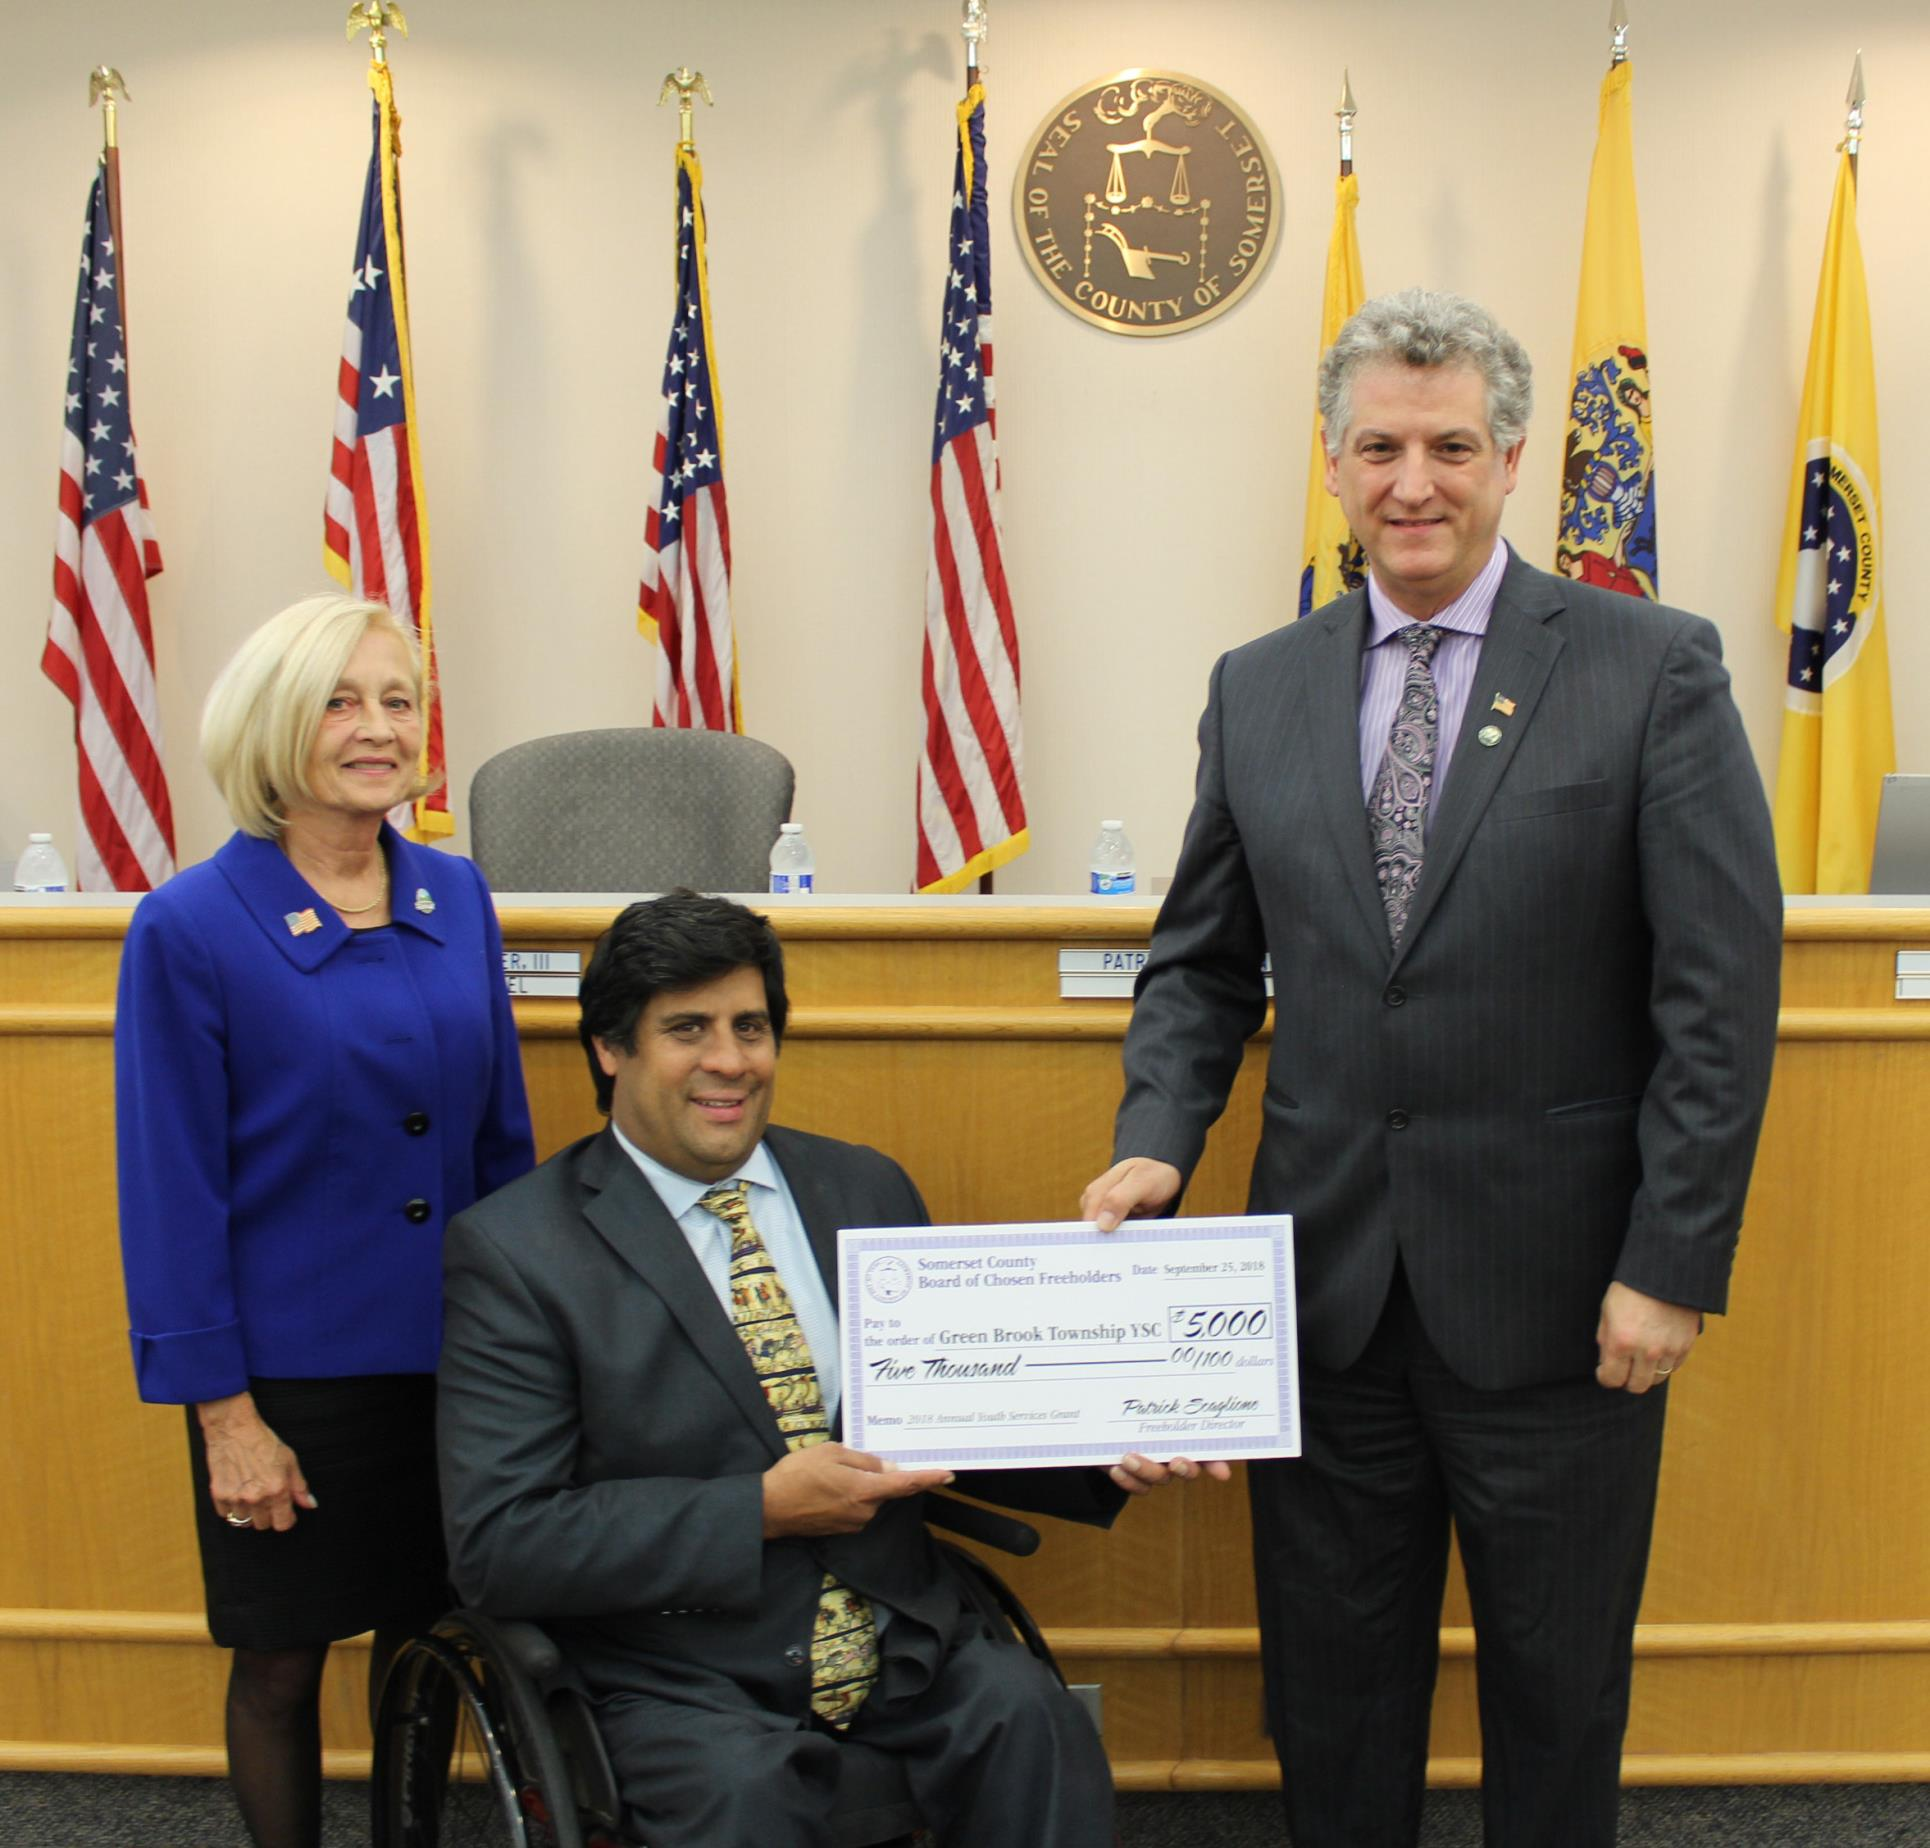 Green Brook Municipal Youth Services Commission, Ceremonial Check